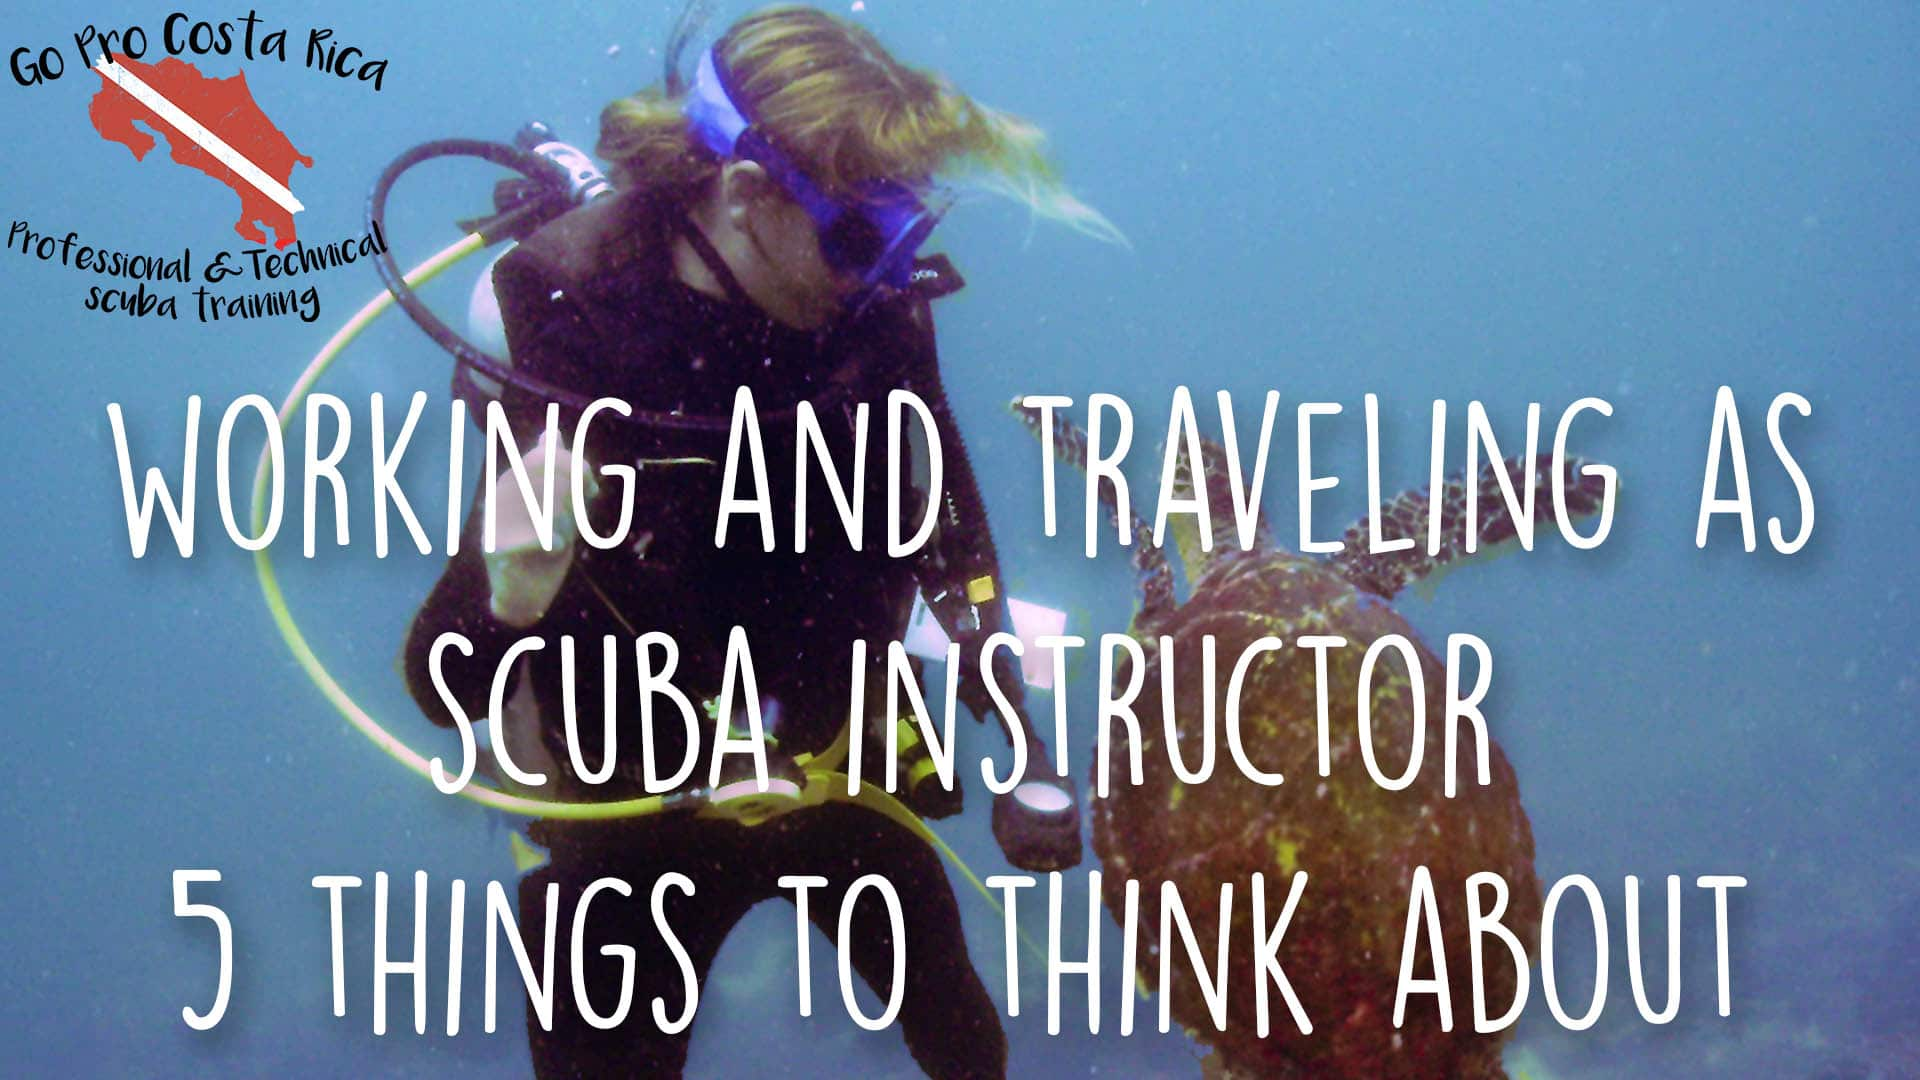 Working and traveling as a scuba instructor – 5 things to think about before you take the plunge